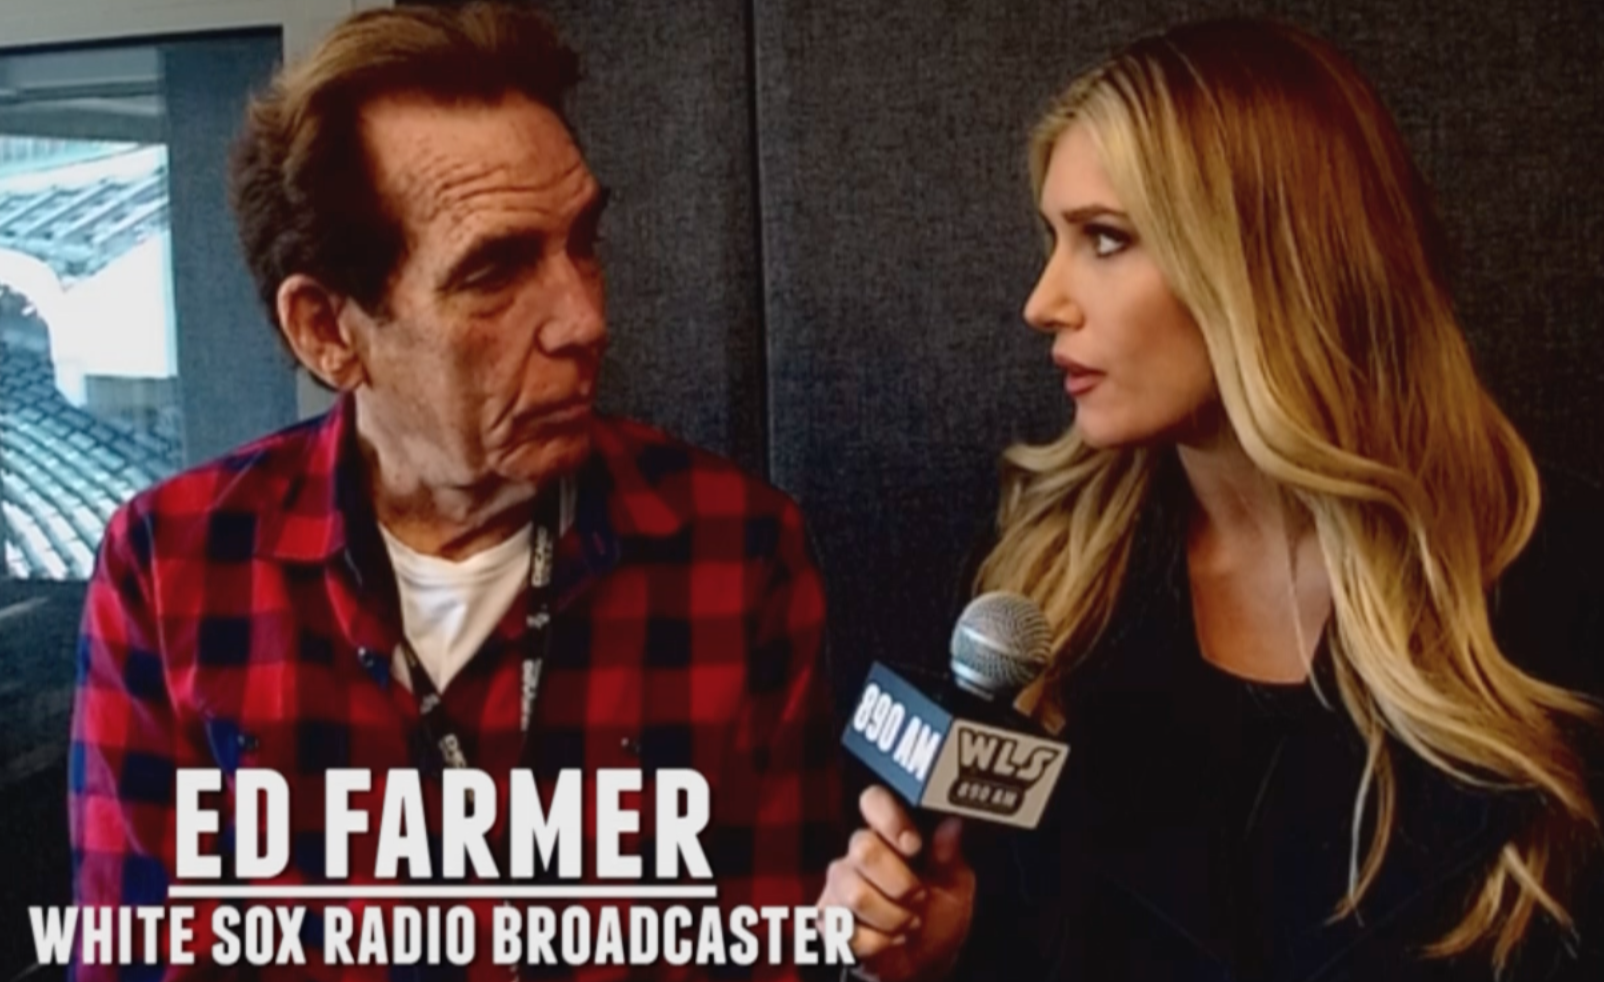 89 Seconds with 890: Ed Farmer